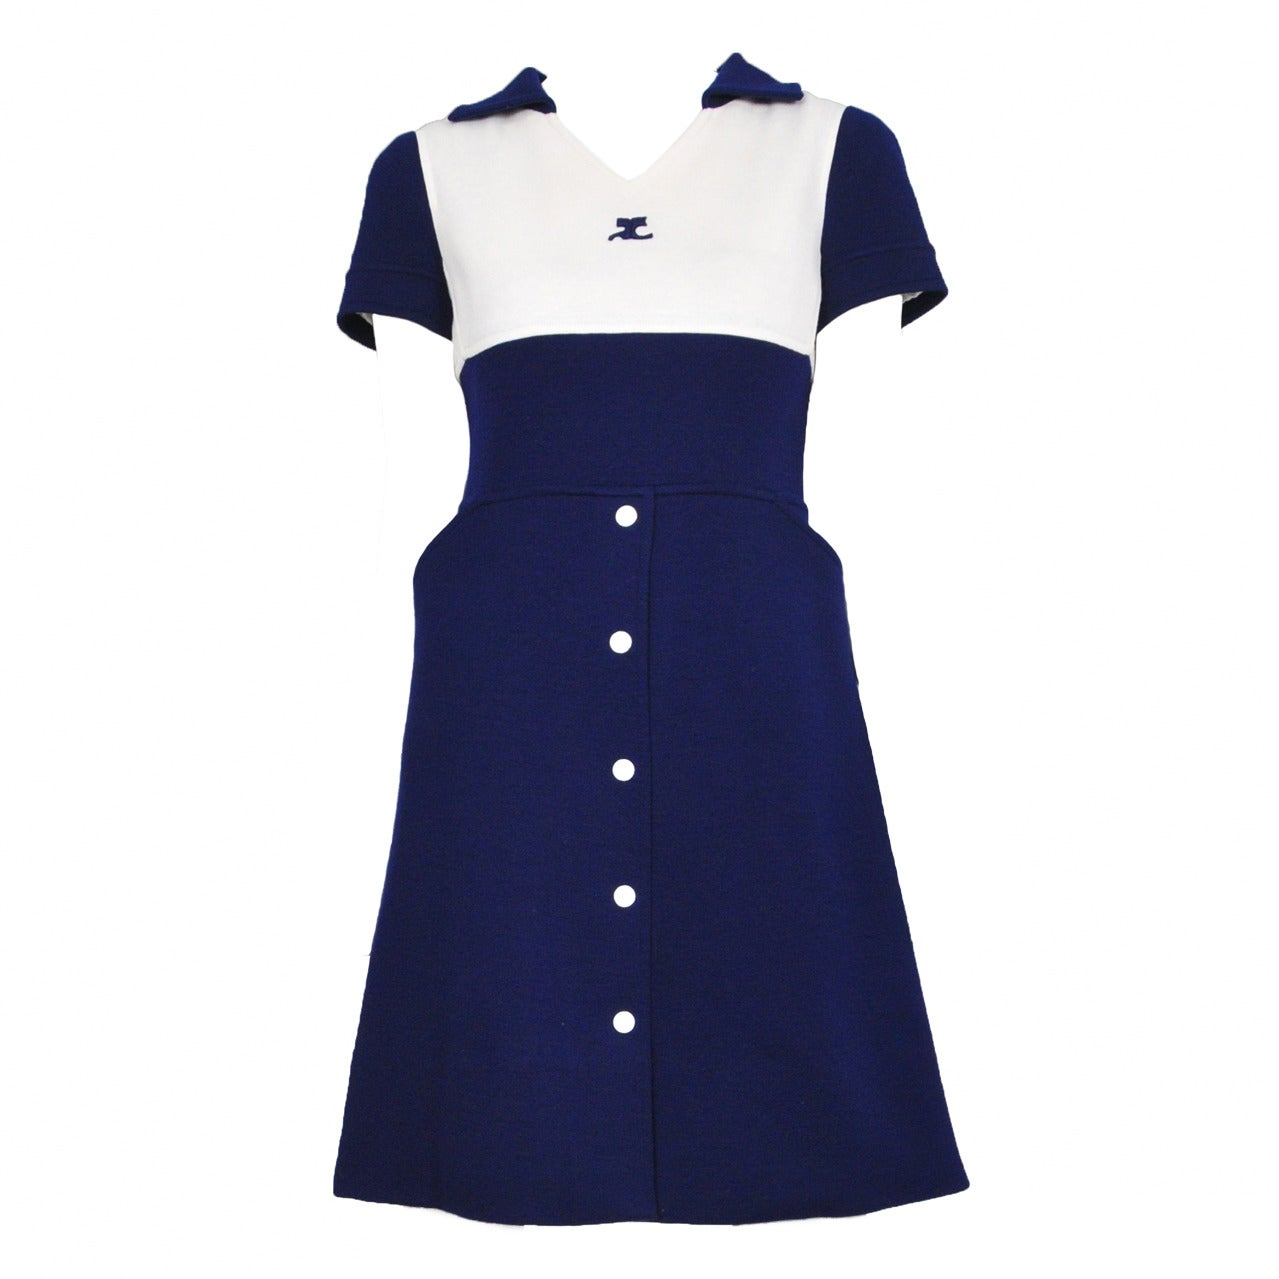 Courreges Blue & White Button Dress 1